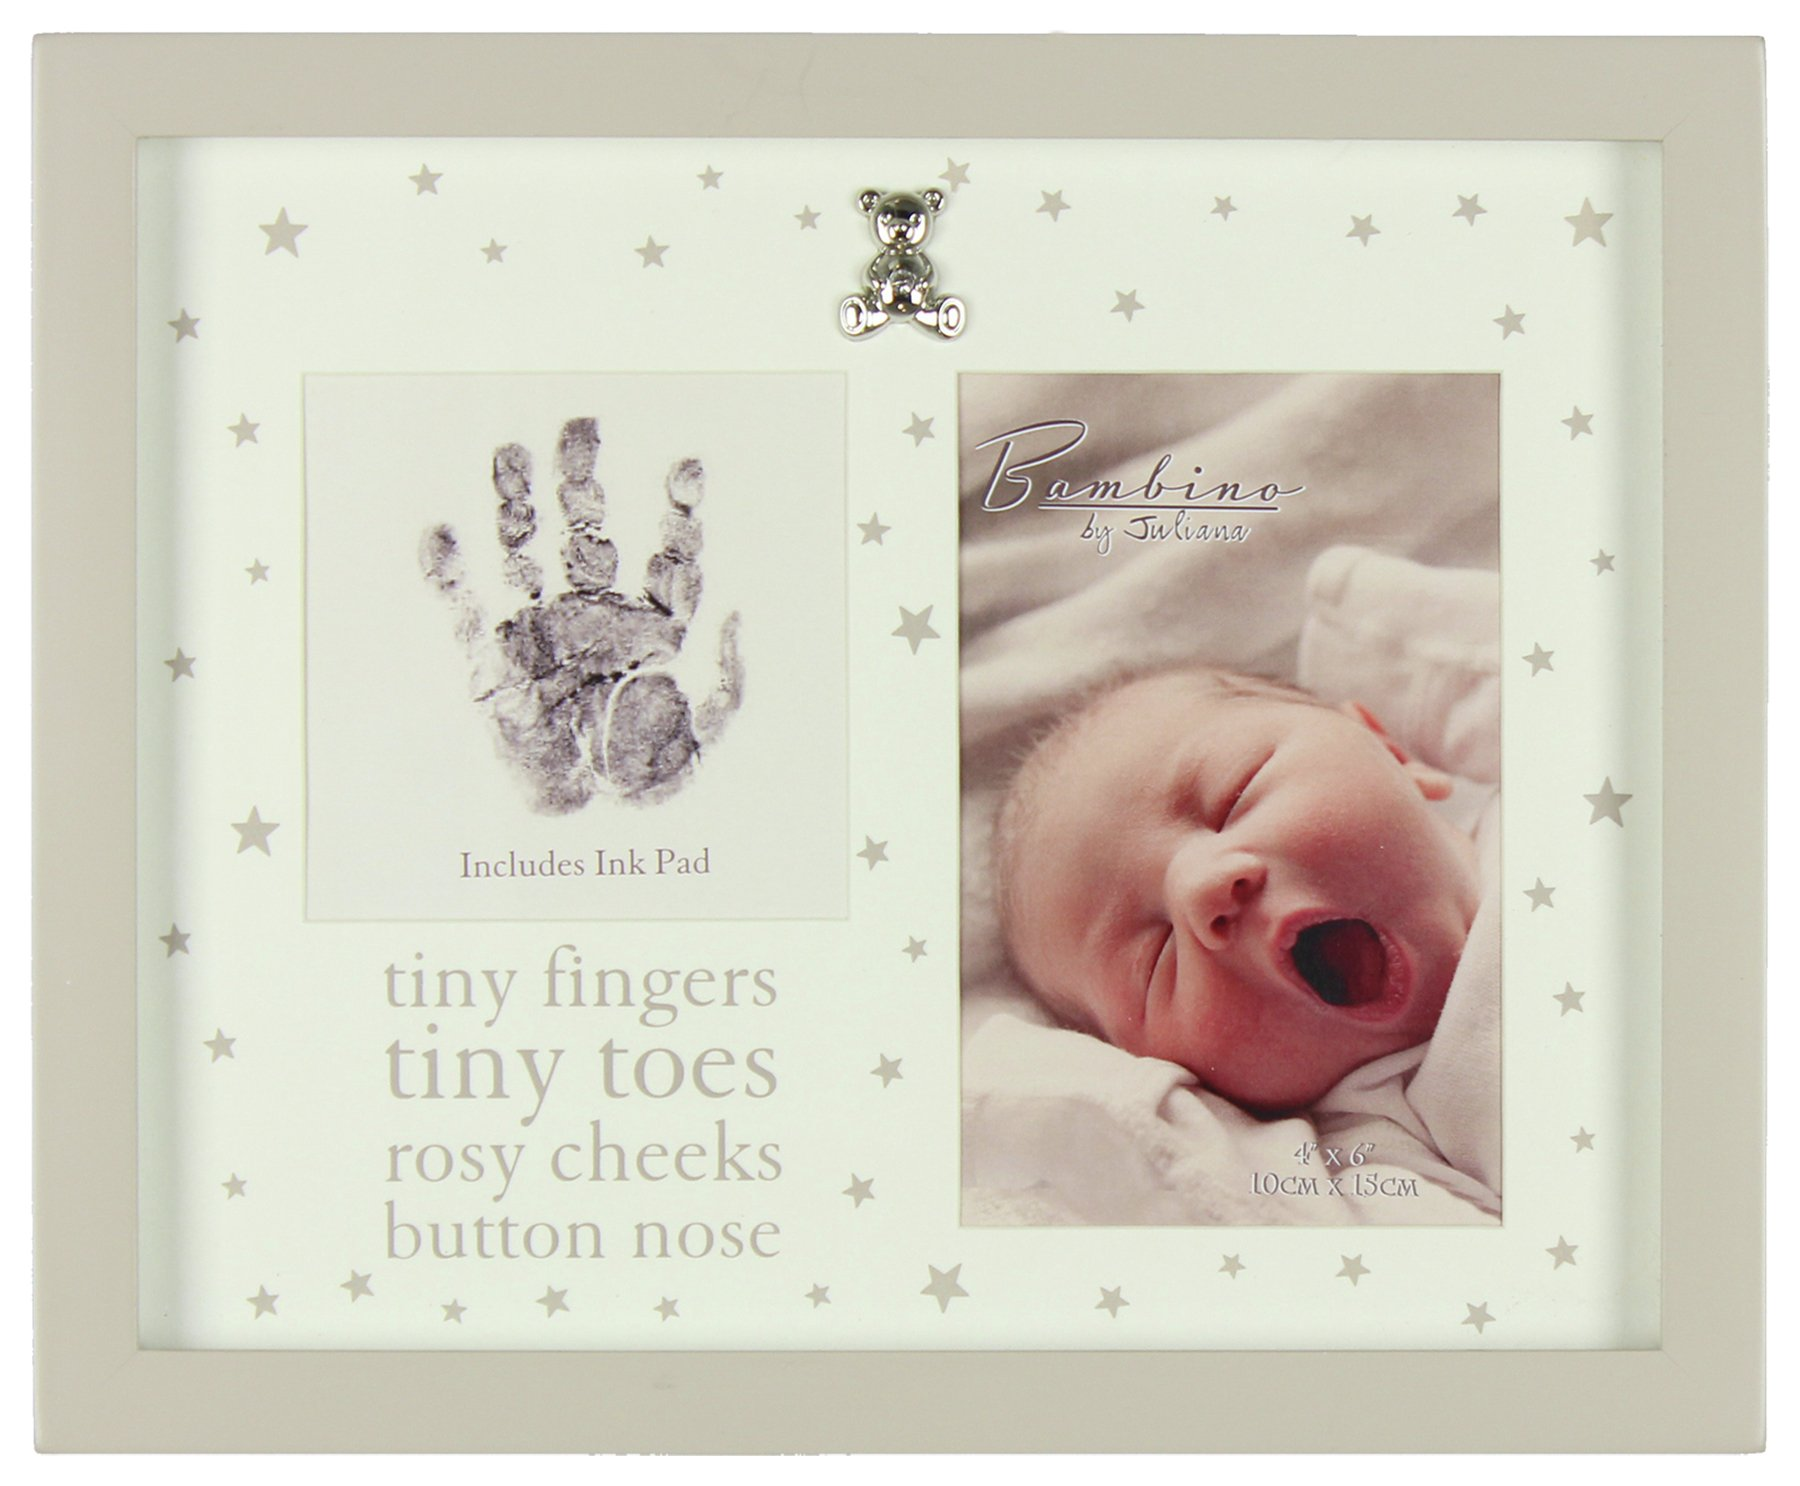 Bambino Hand Print and Photo Frame